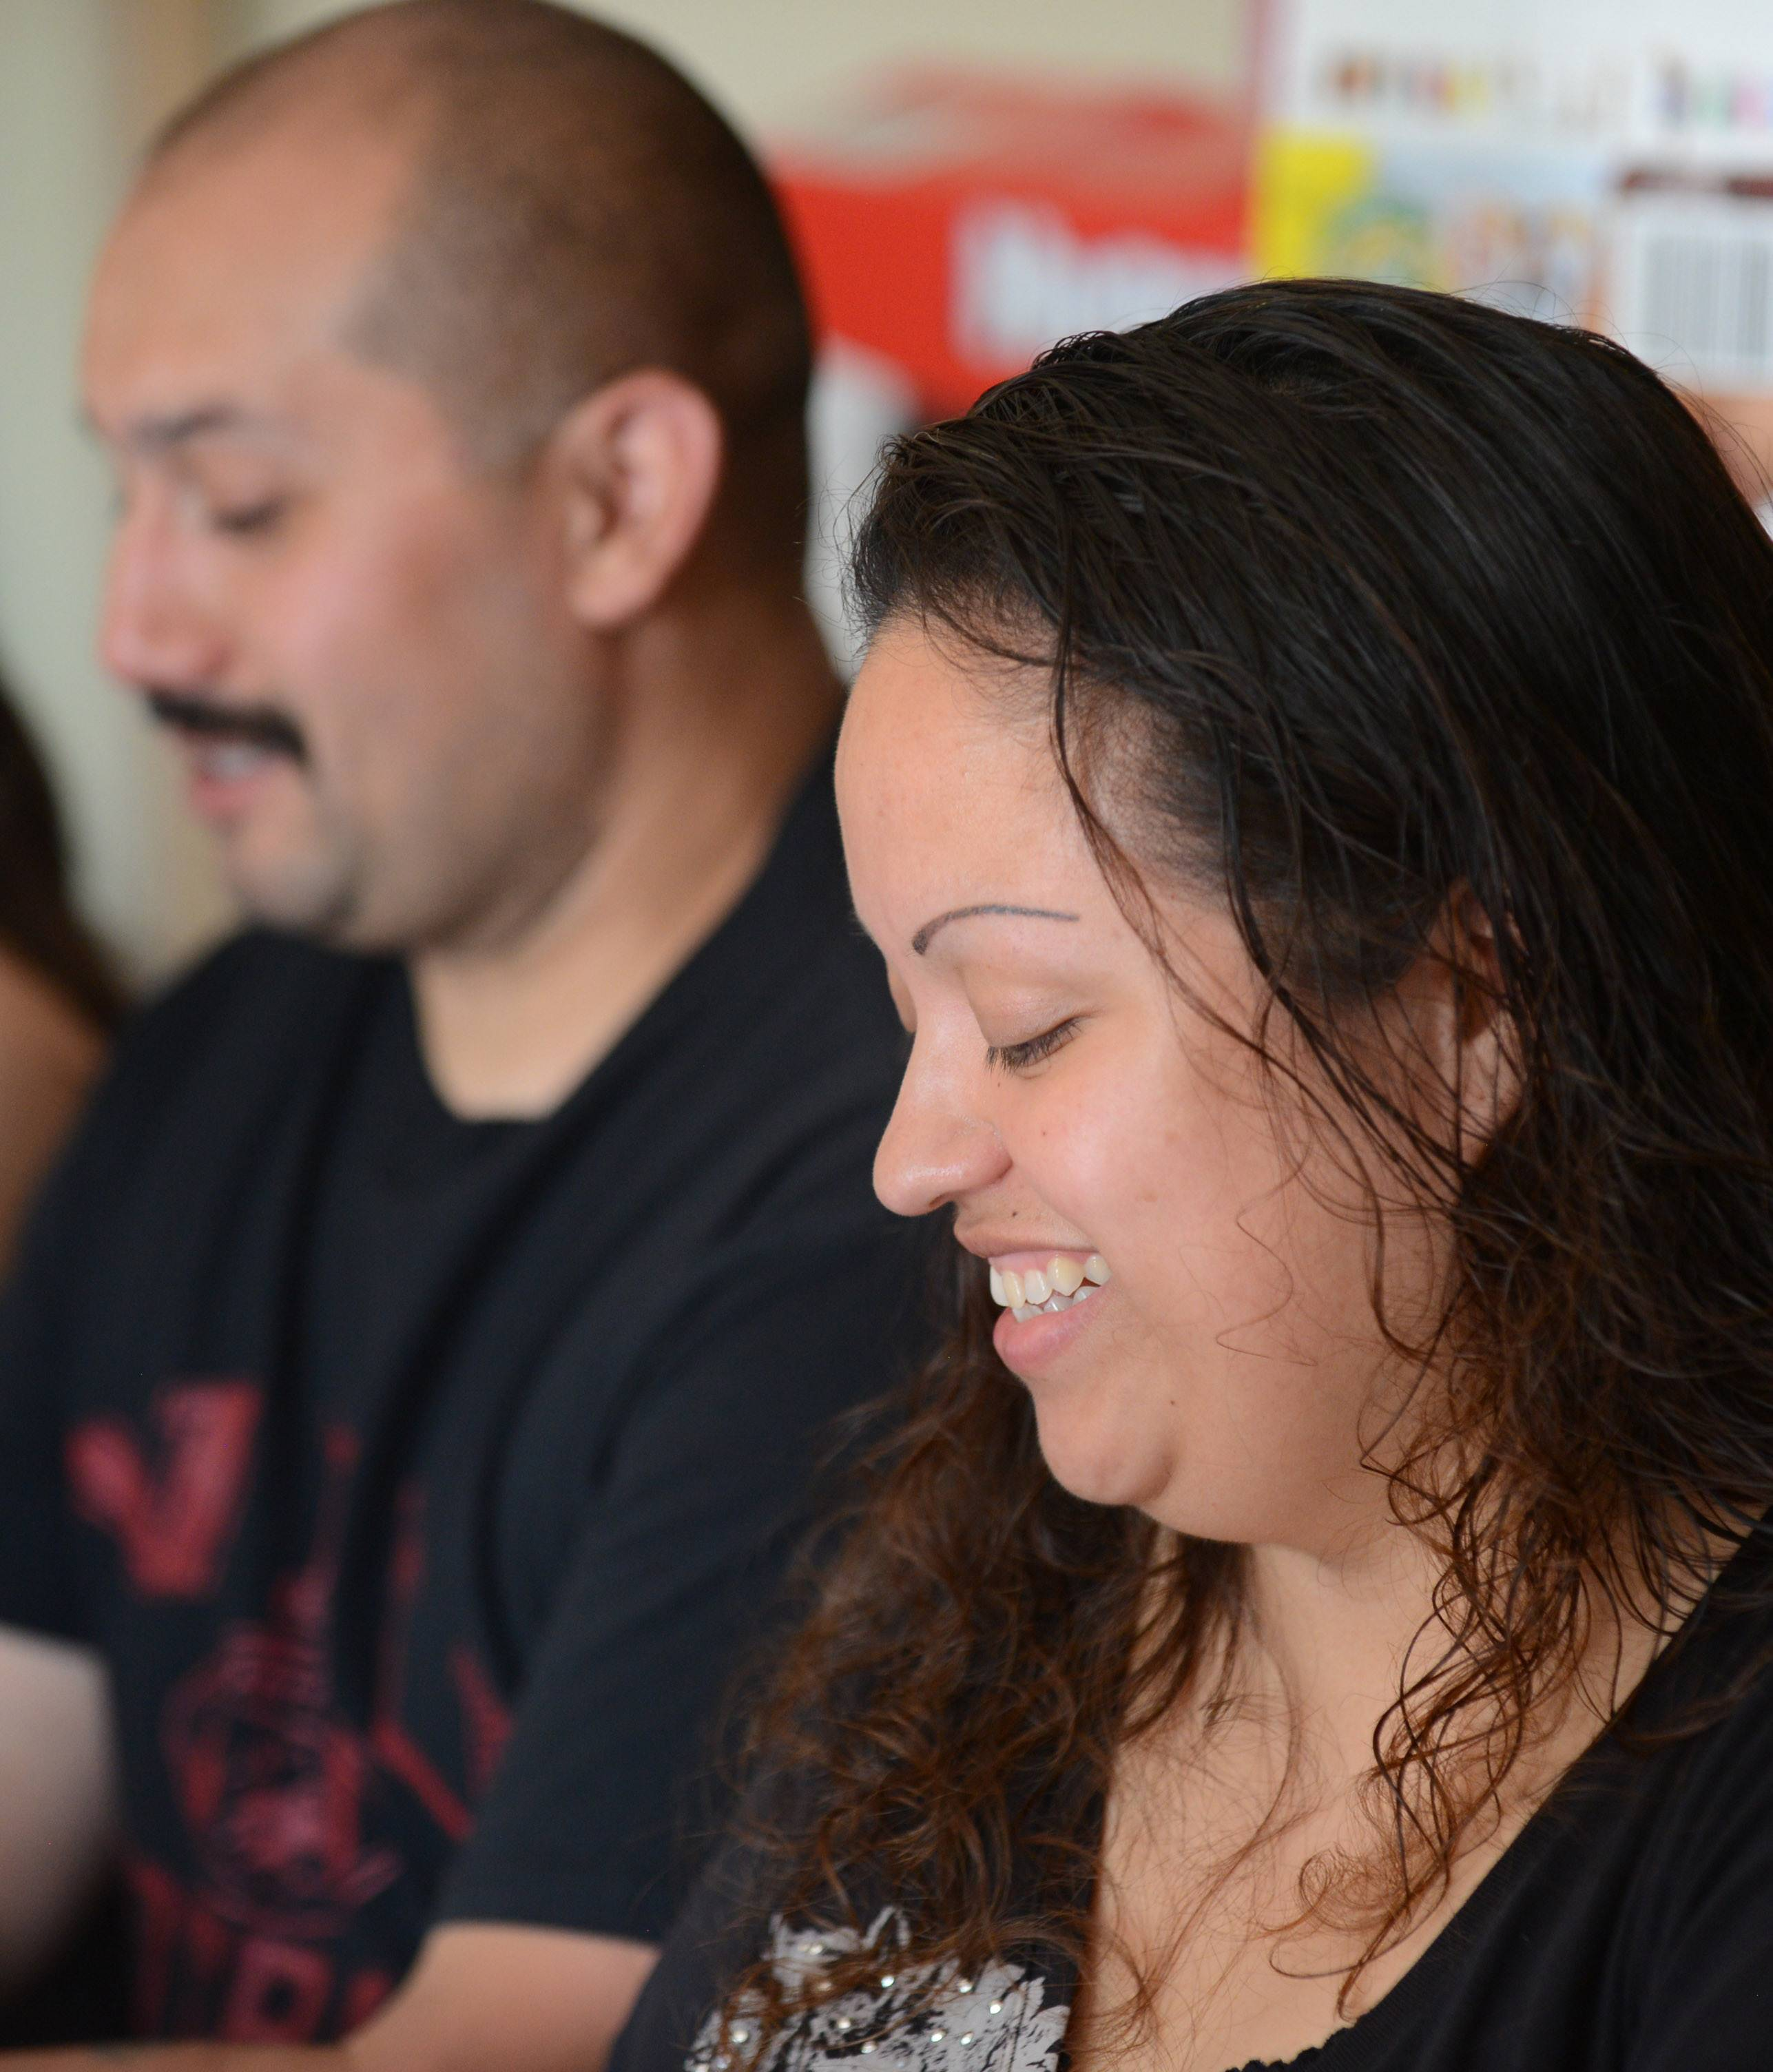 Seated next to her husband, Jose, Brandy Huerta of Carpentersville talks about how she entered several contests and raffles so her oldest daughter, Bianca, 15, could have a chance for a memorable quinceañera.